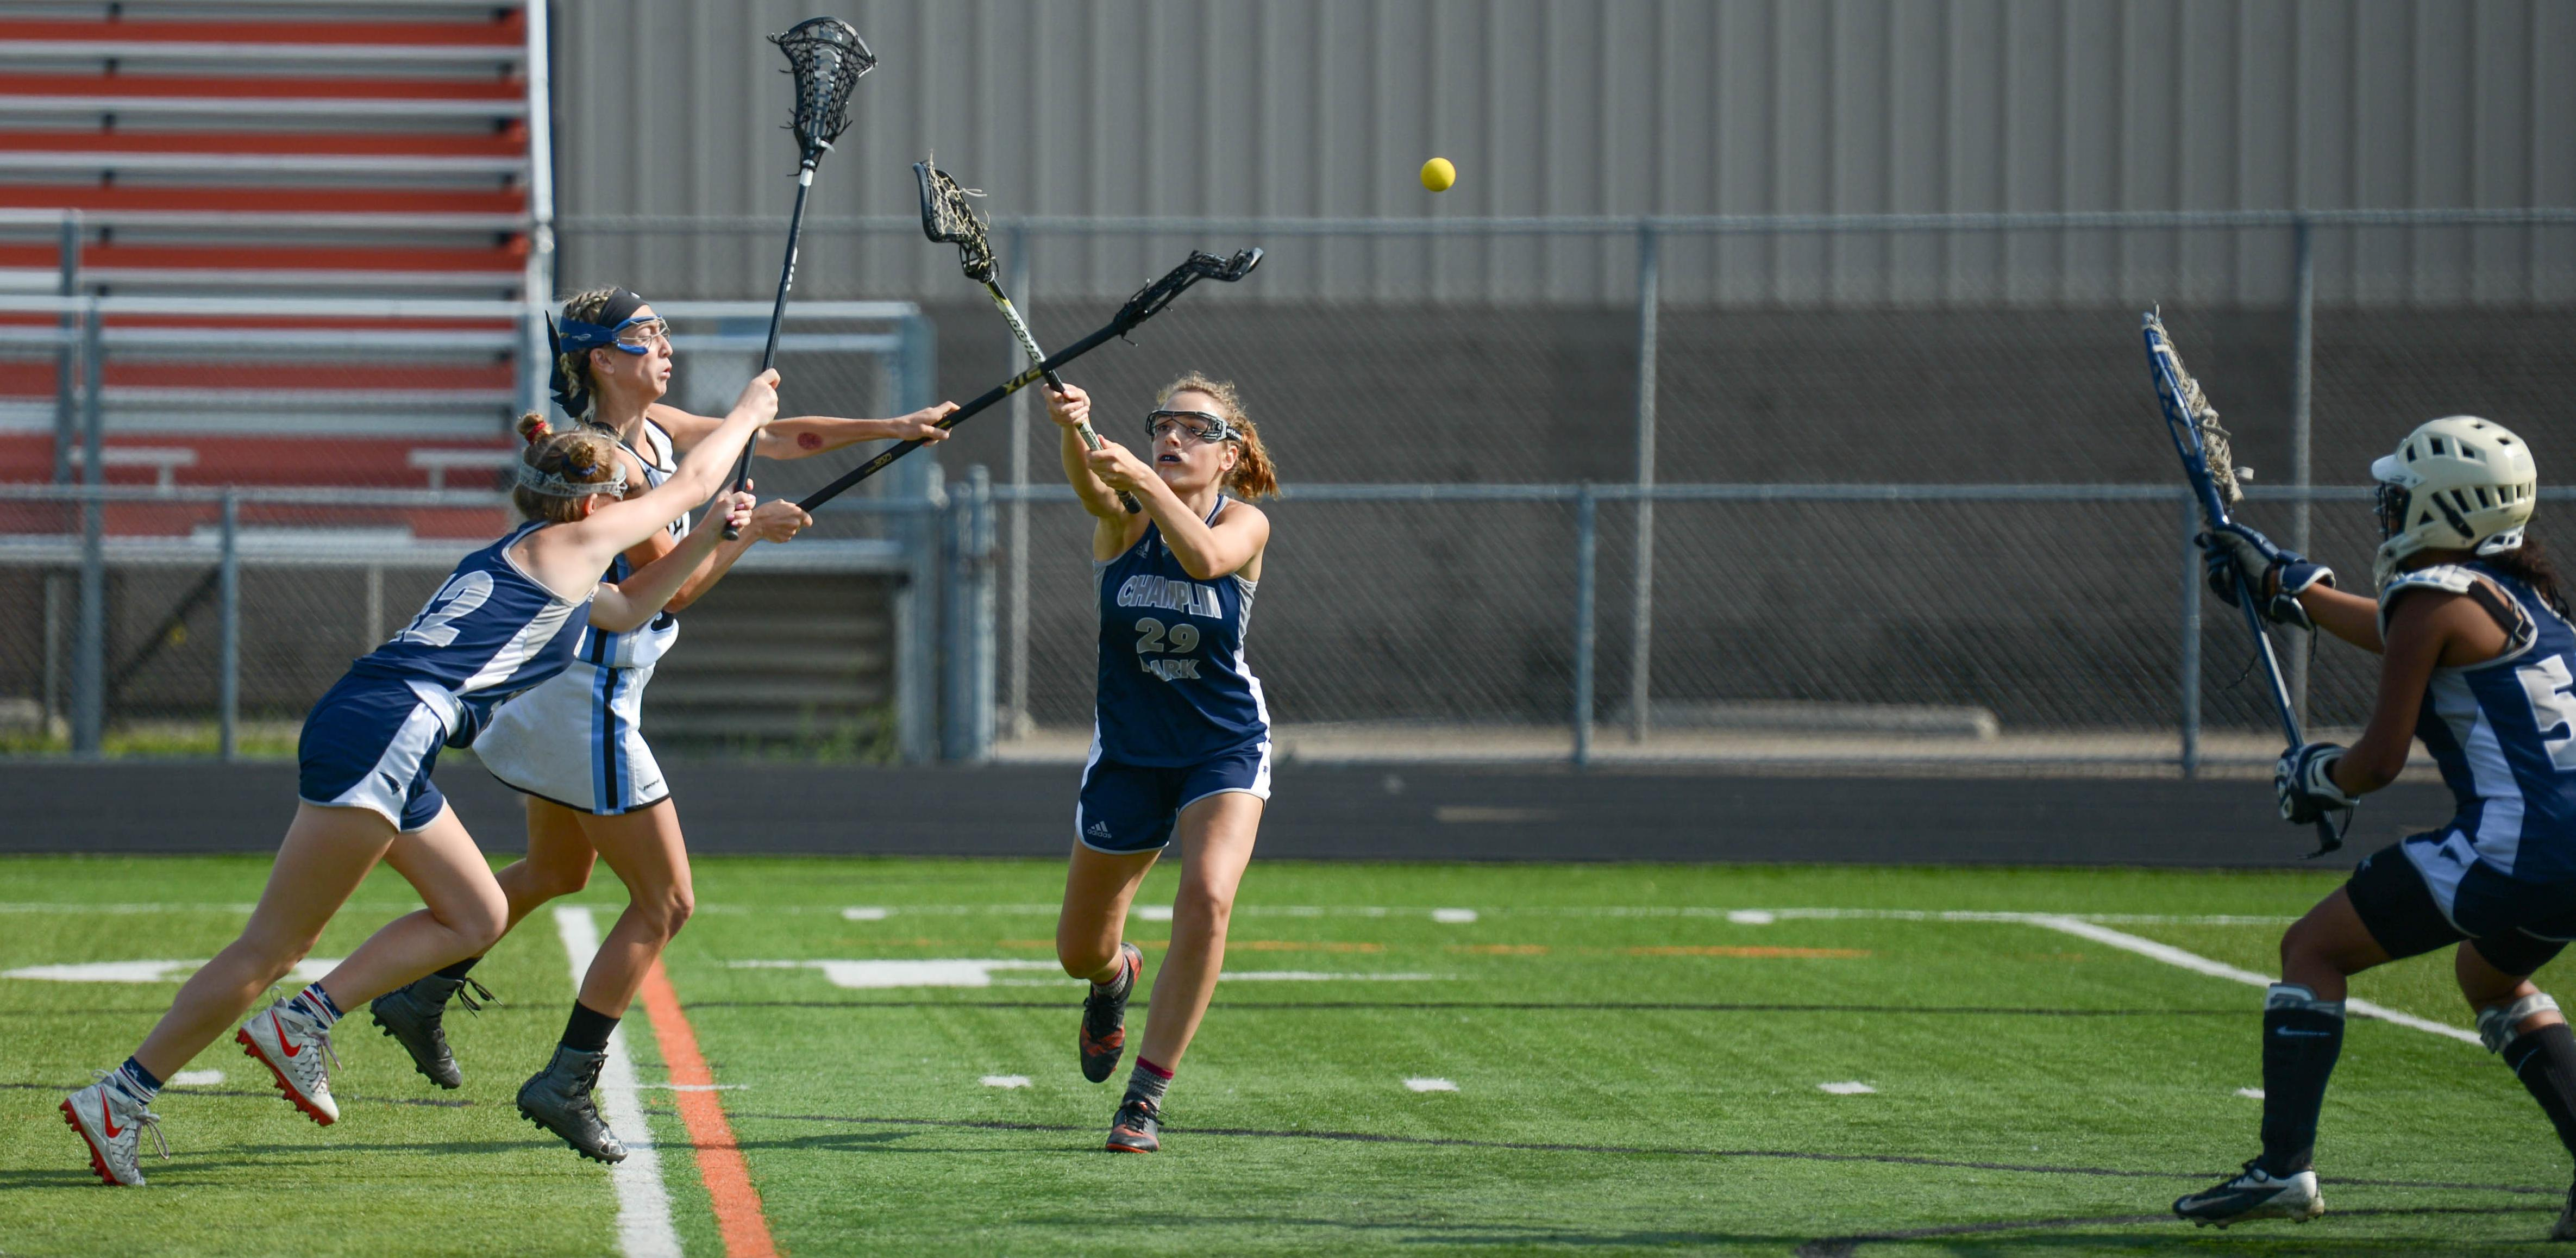 Blaine midfielder Abby Jones sends a shot onto goal against Champlin Park in the Section 7 championship game. Photo by Carter Jones, SportsEngine